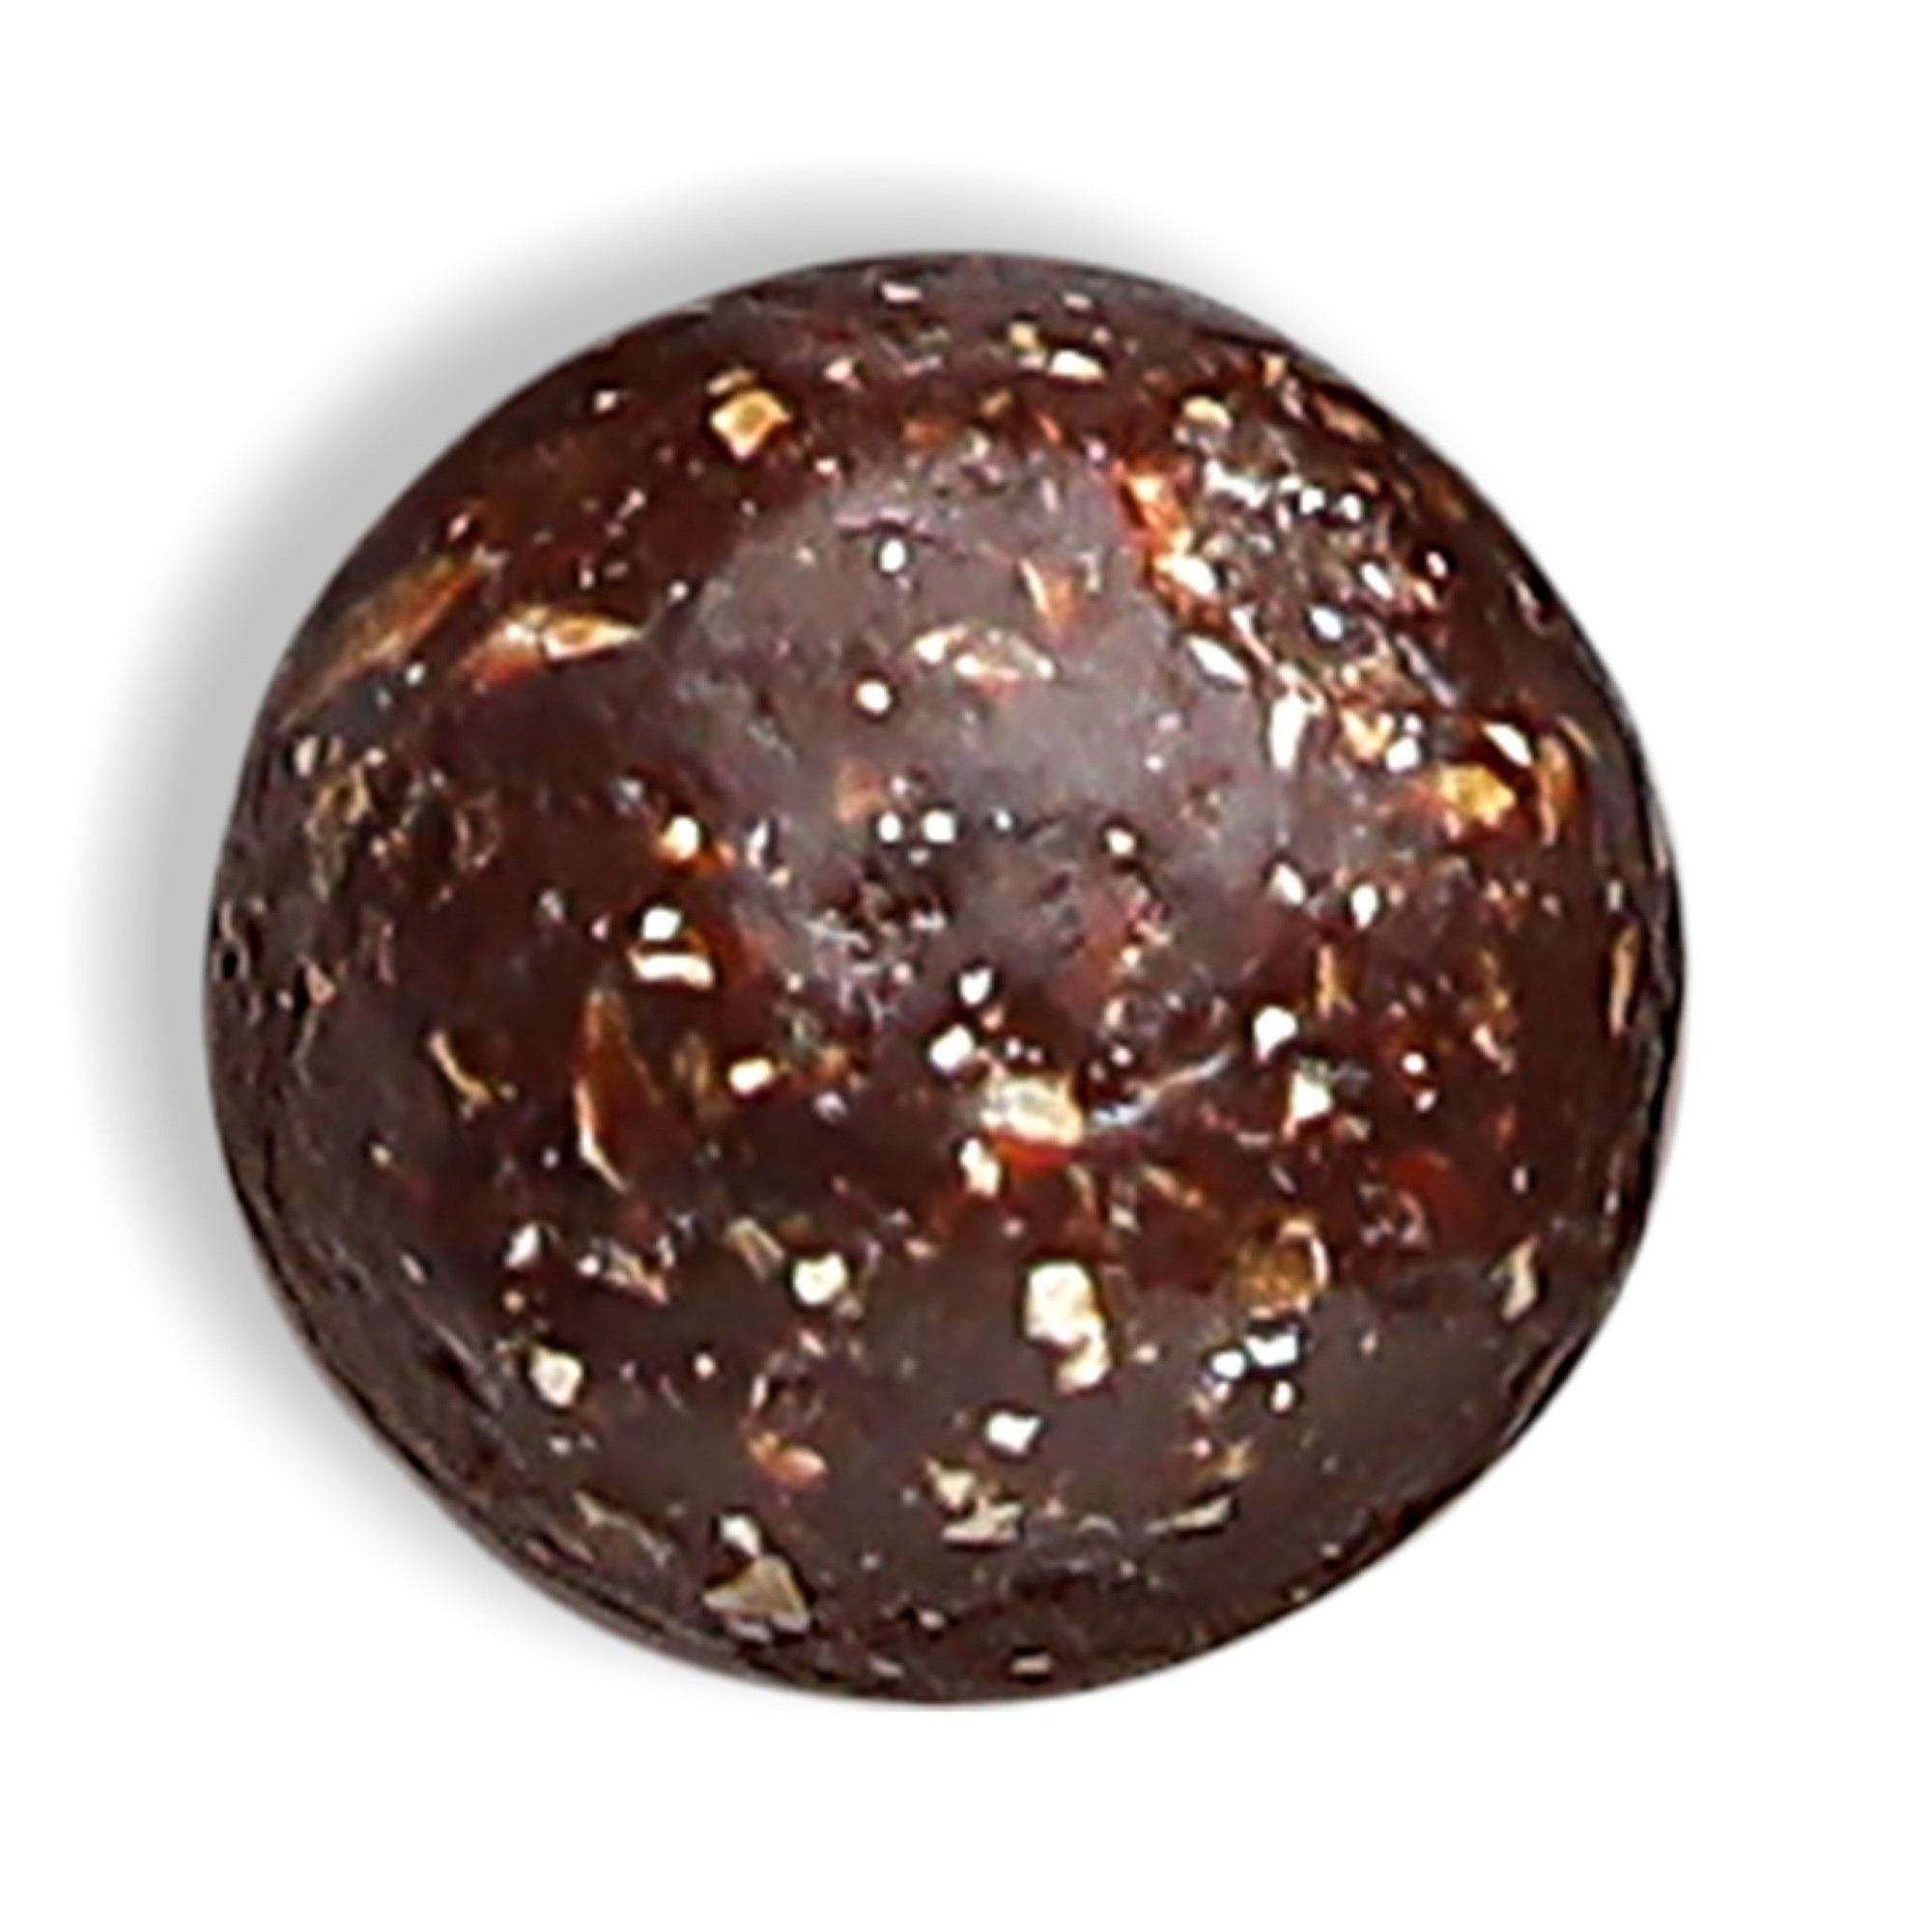 Chocolate Covered Cookie Dough - Free Sample